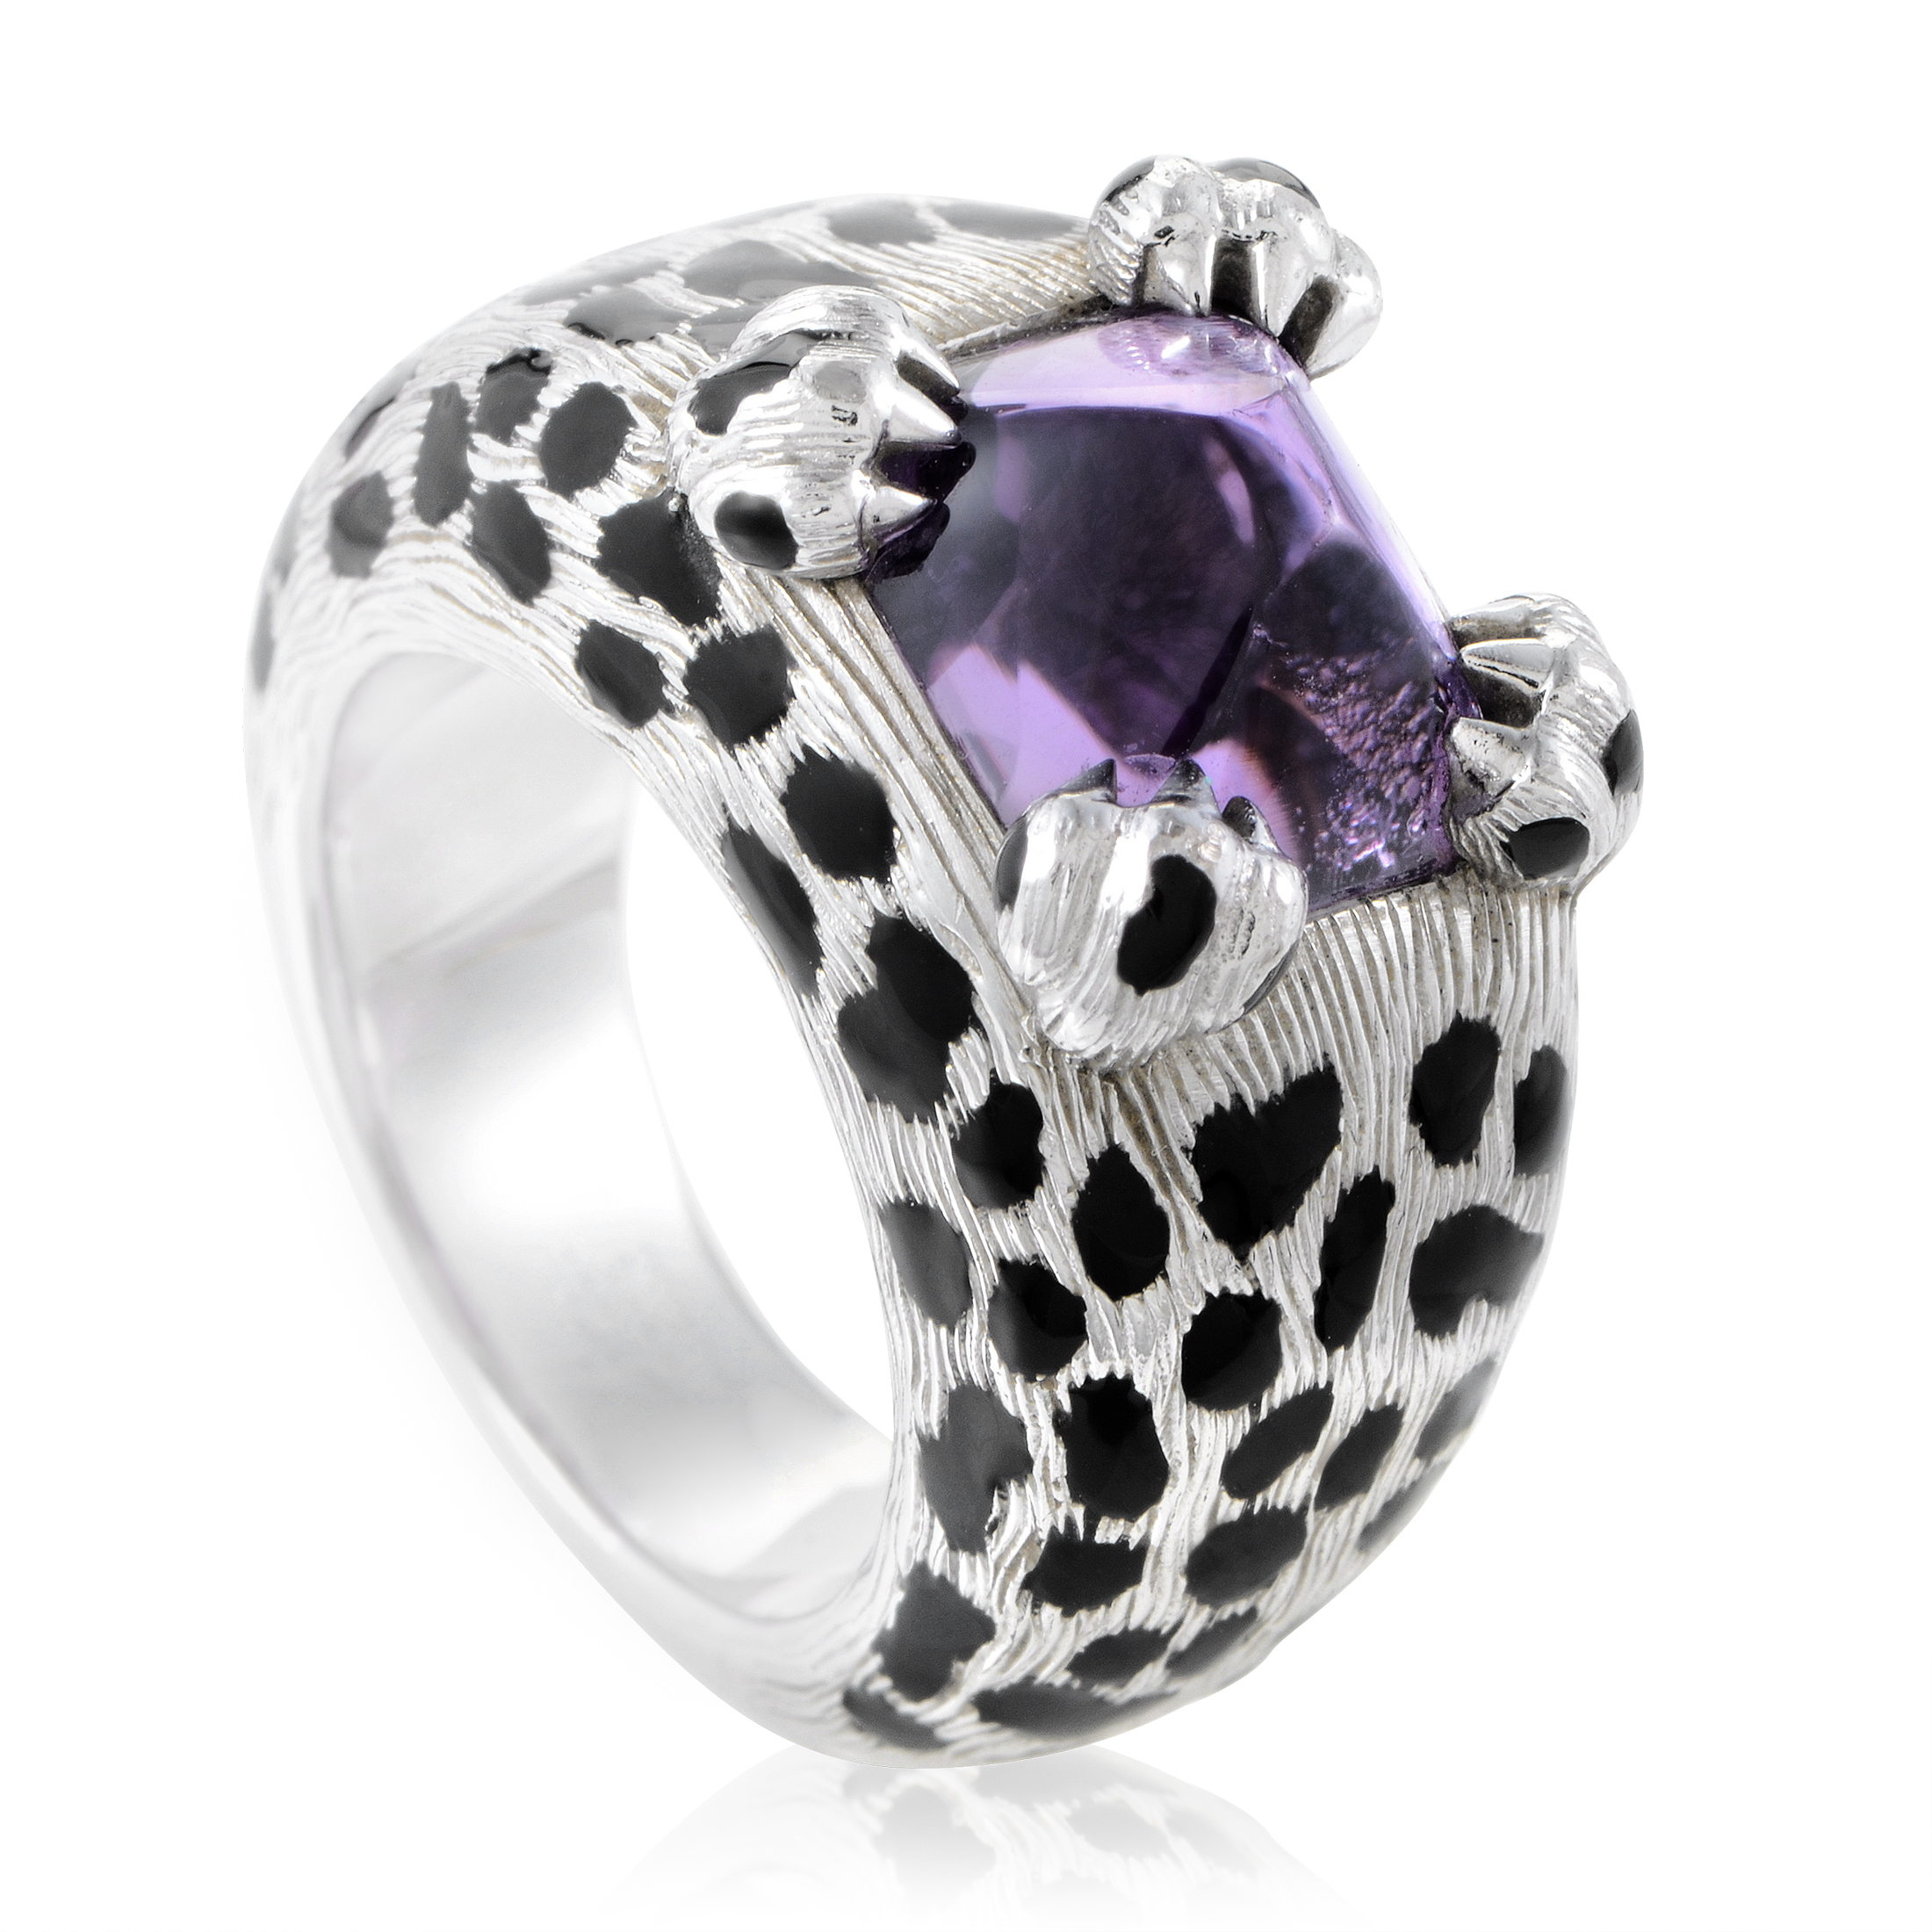 Dior Mitza Women's 18K White Gold Amethyst Ring